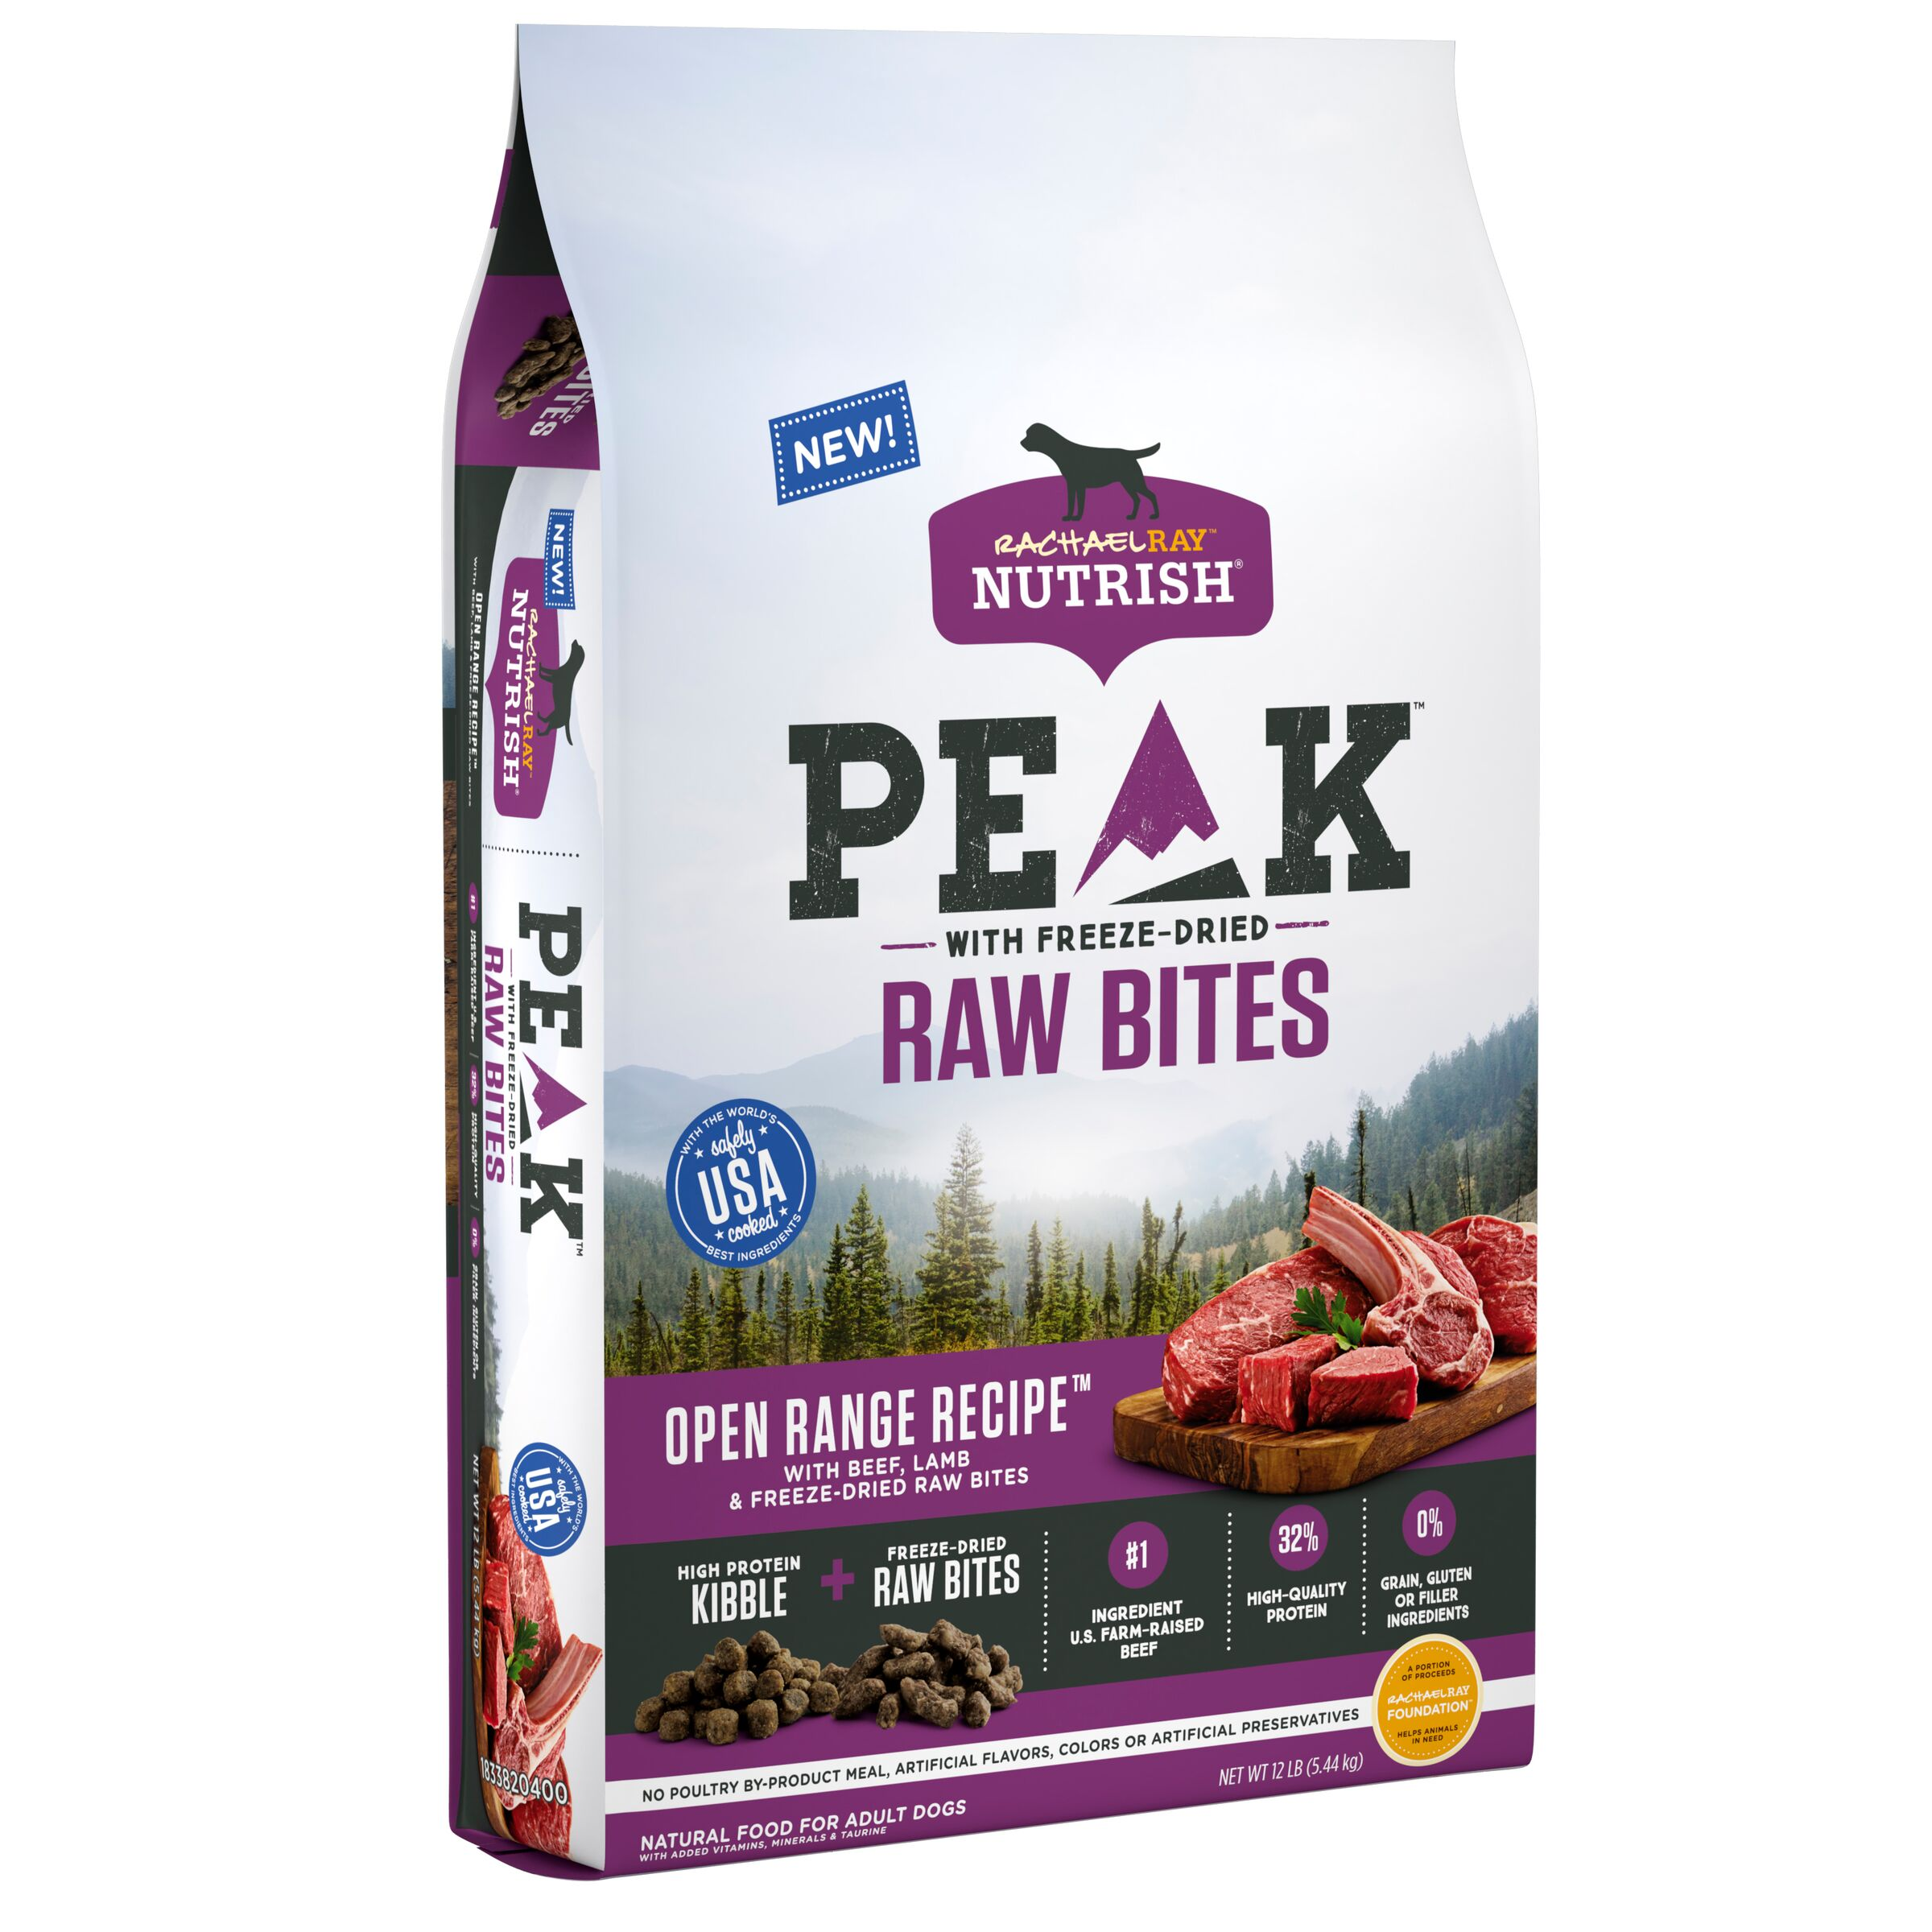 Rachael Ray Nutrish PEAK Natural Grain Free Dog Food with Freeze Dried Raw Bites, Open Range Recipe with Beef & Lamb, 12lbs